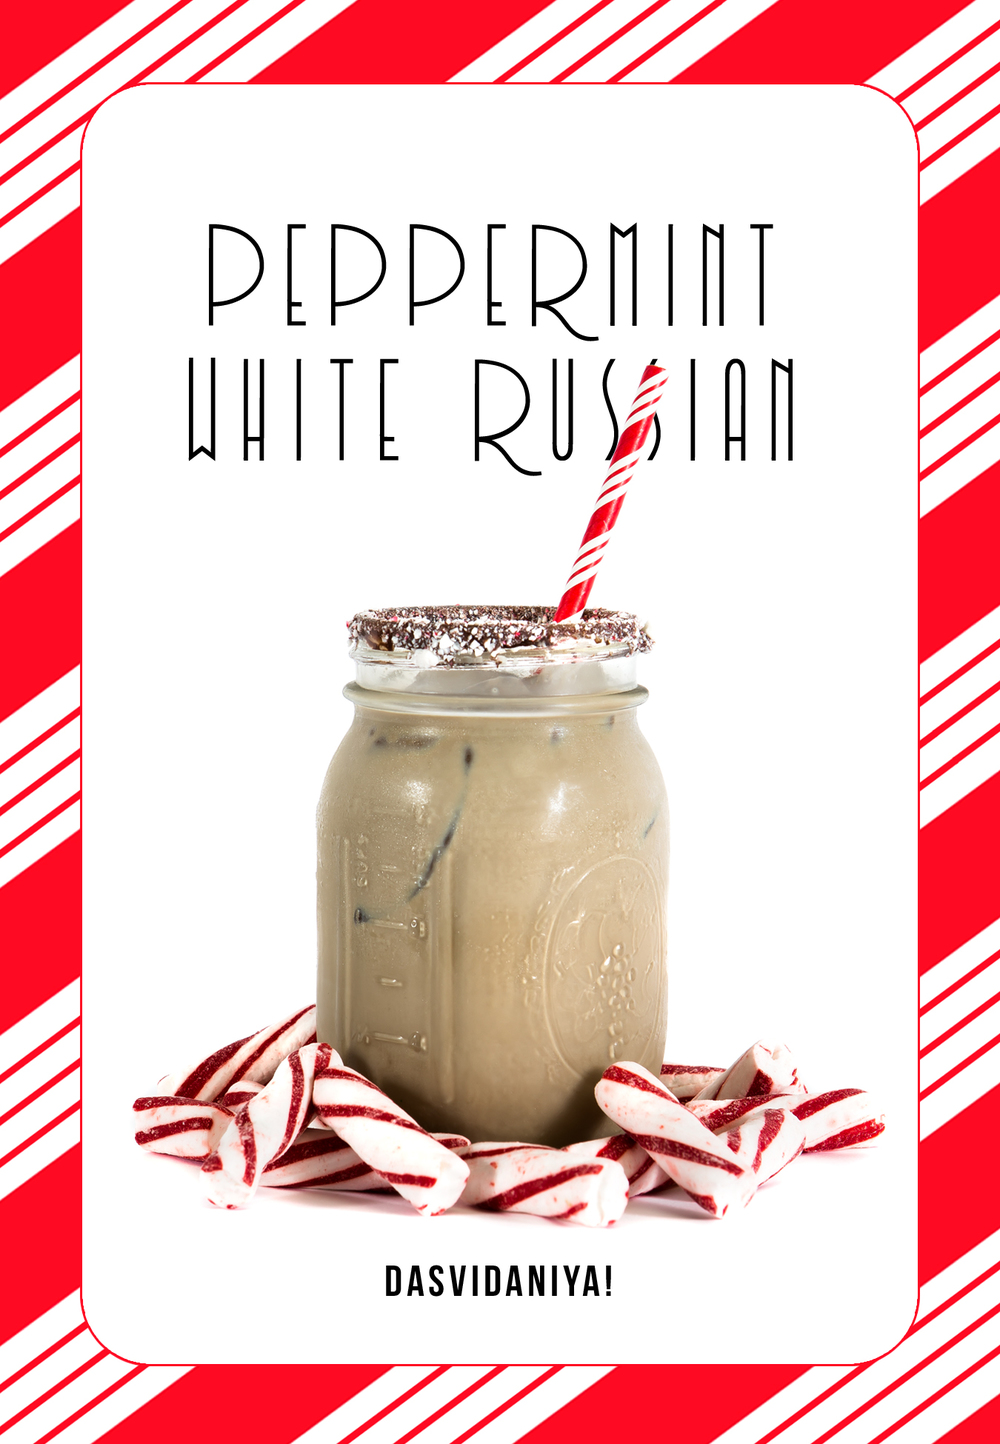 peppermint_white_russian_side2.jpg